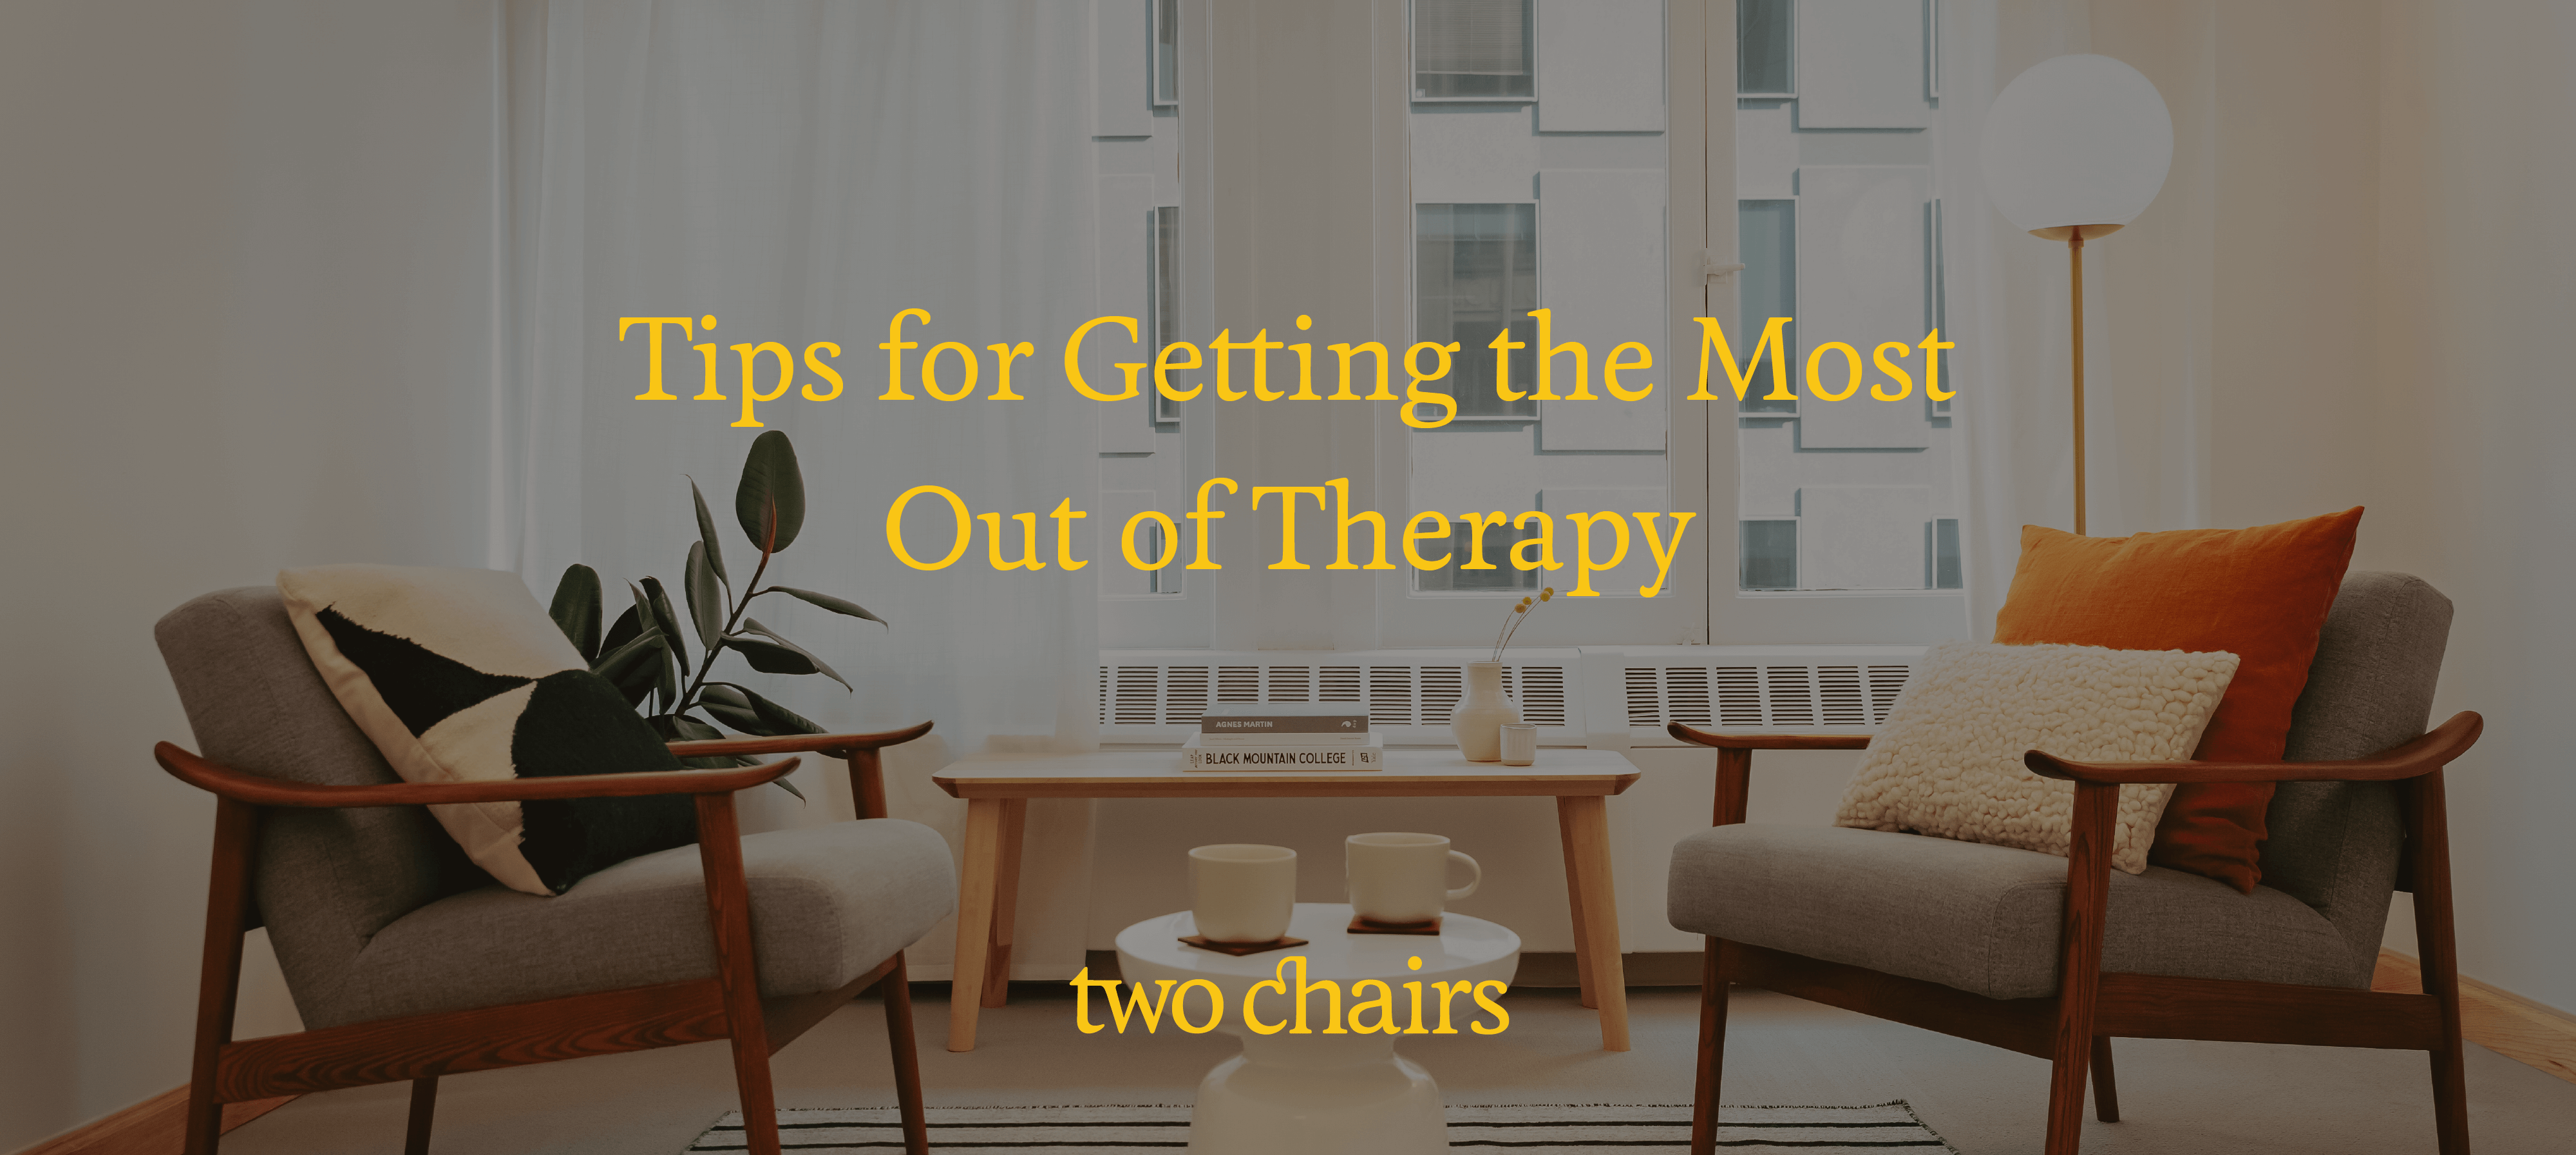 Tips for Getting the Most Out of Therapy